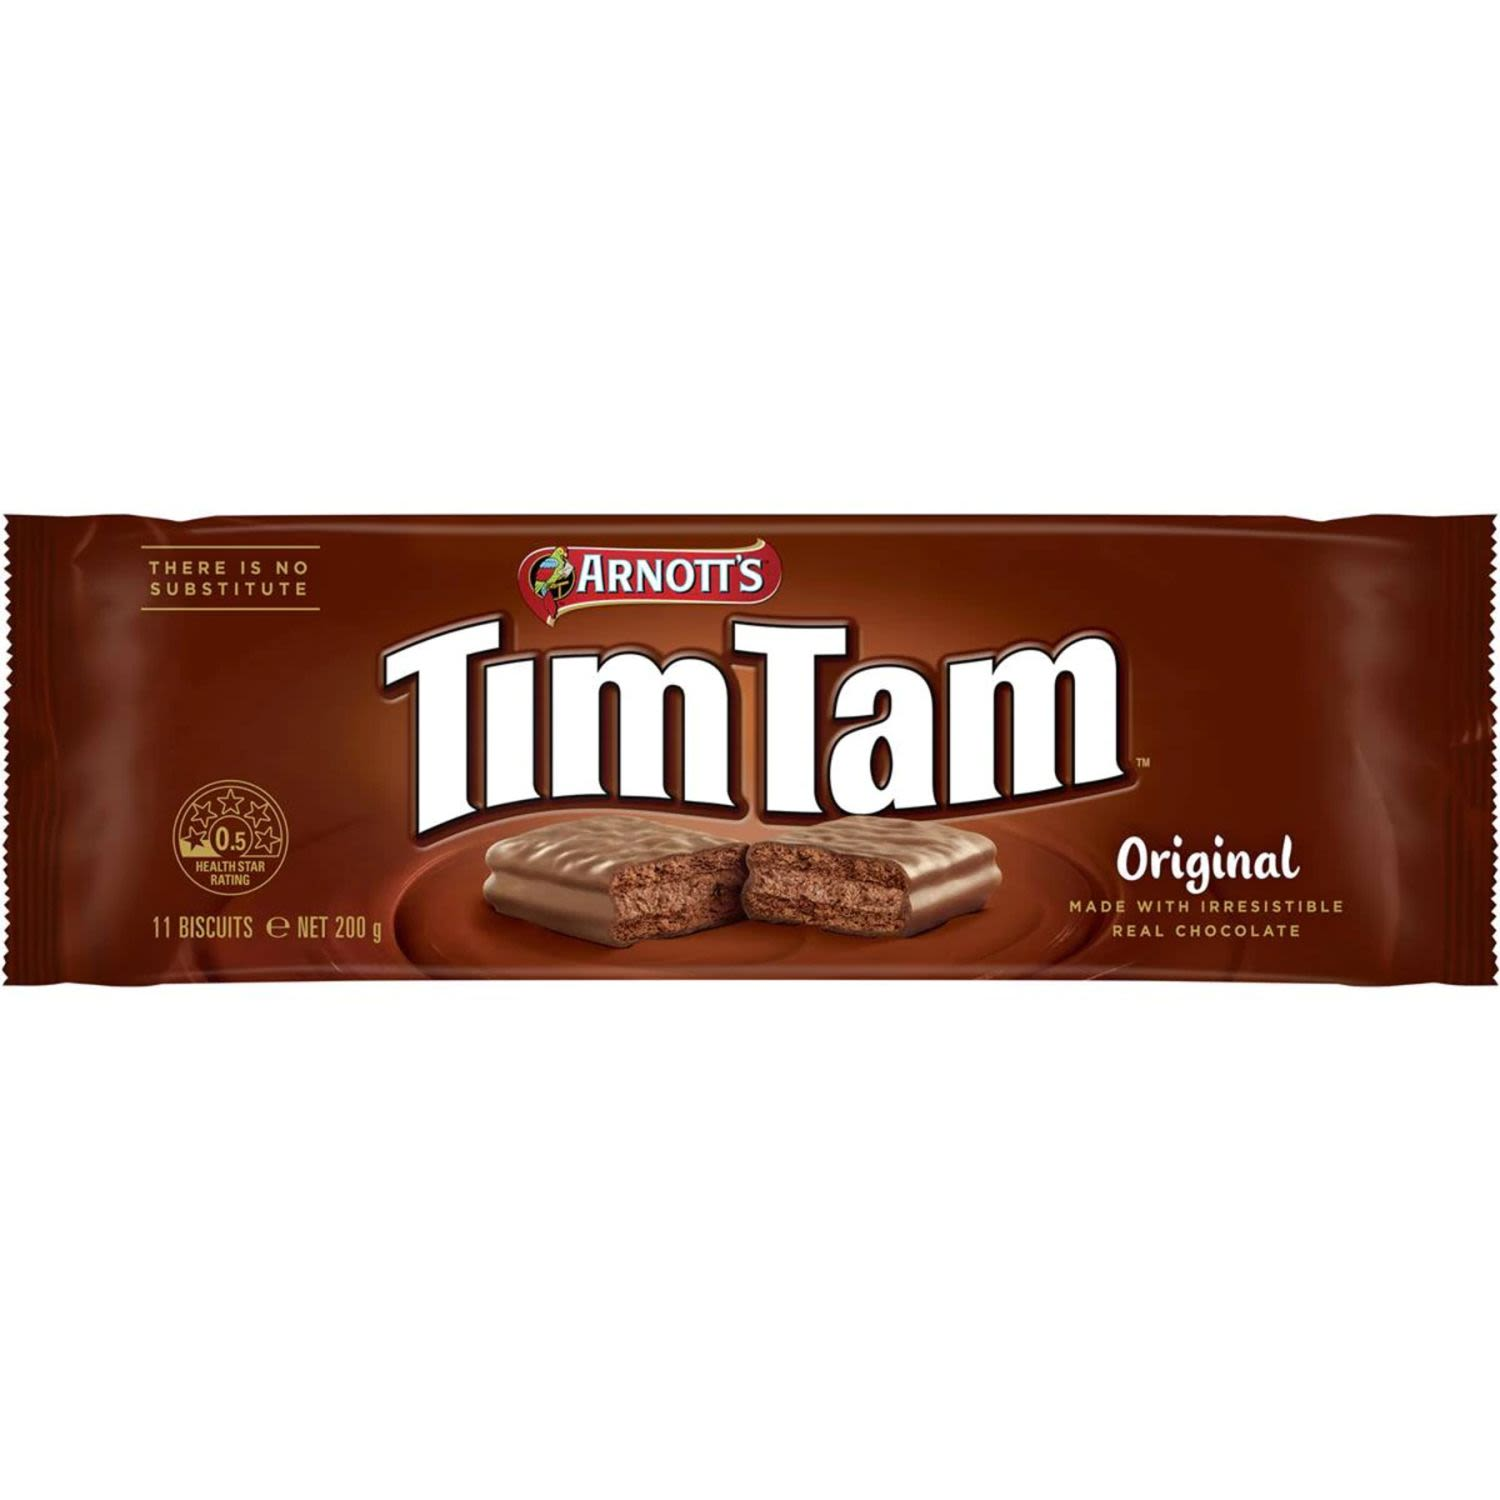 A mouth-watering combination of crunchy biscuit, creamy filling and real chocolate coating, it's easy to see why Tim Tams are Australia's most-loved chocolate biscuit. Share a packet of these deliciously sweet biscuits with your friends and family today.